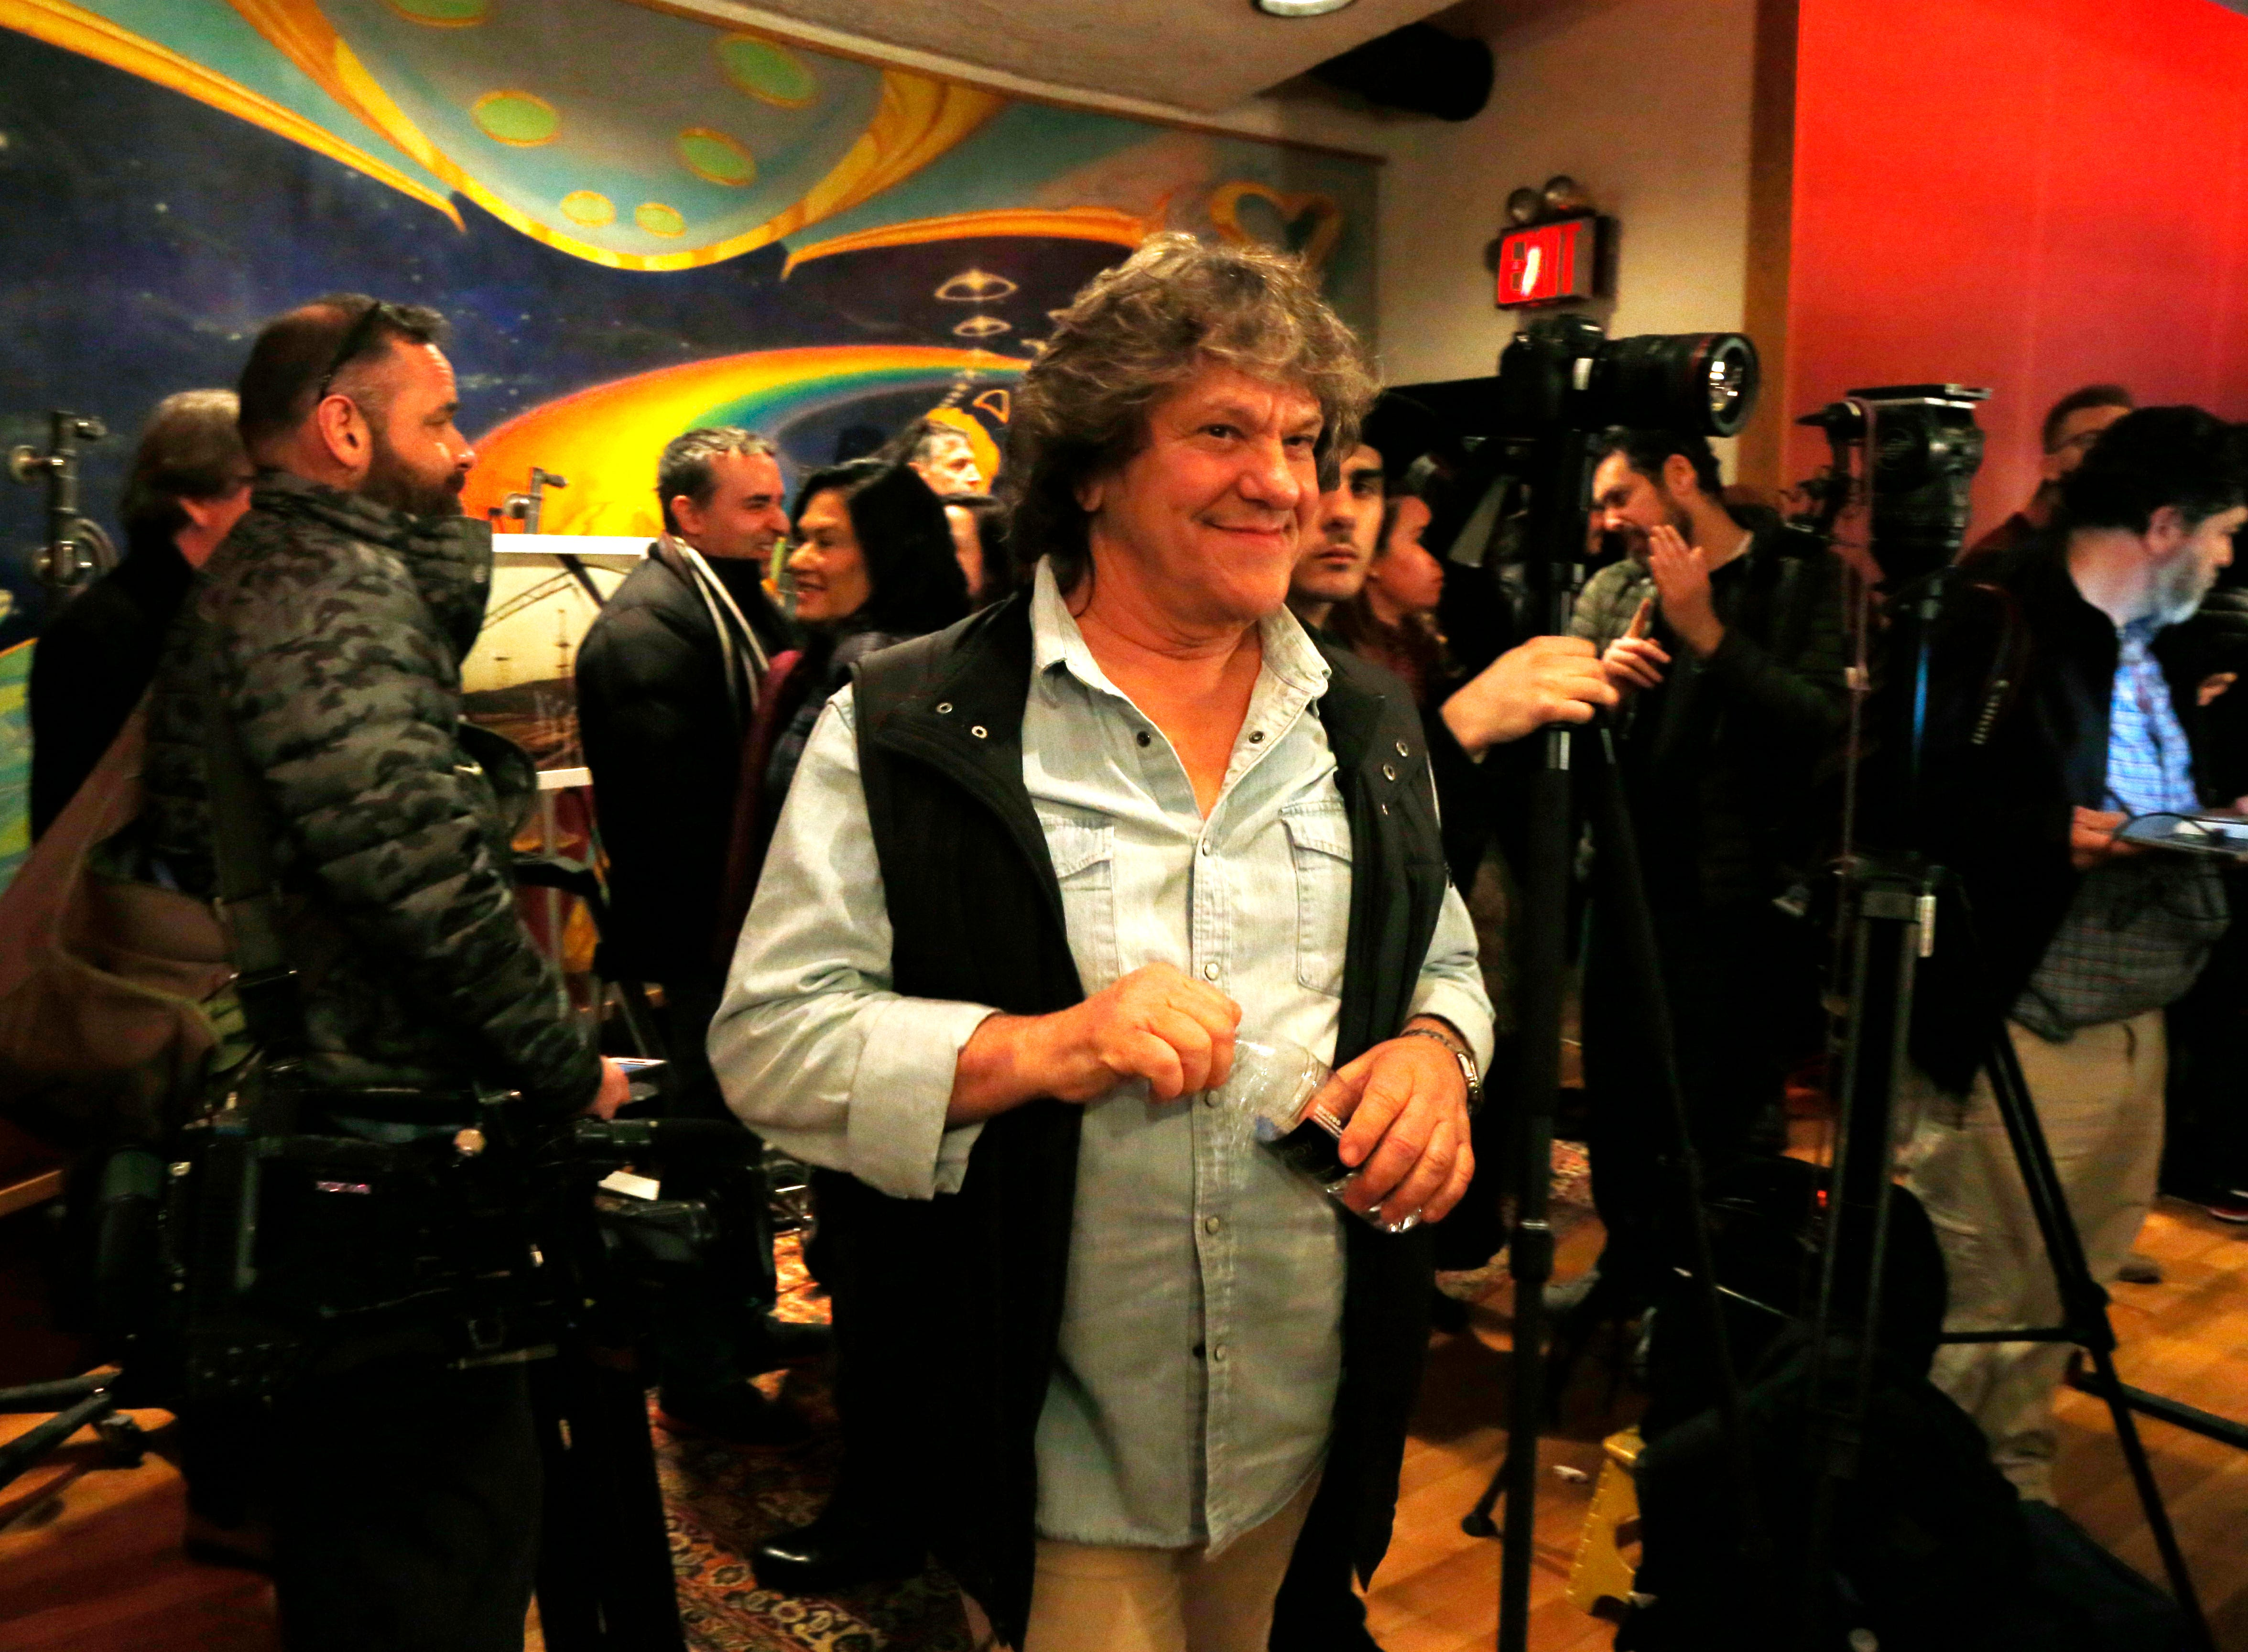 Michael Lang following the announcement of the Woodstock 50 line up at Electric Lady Studios in New York City on March 19, 2019.